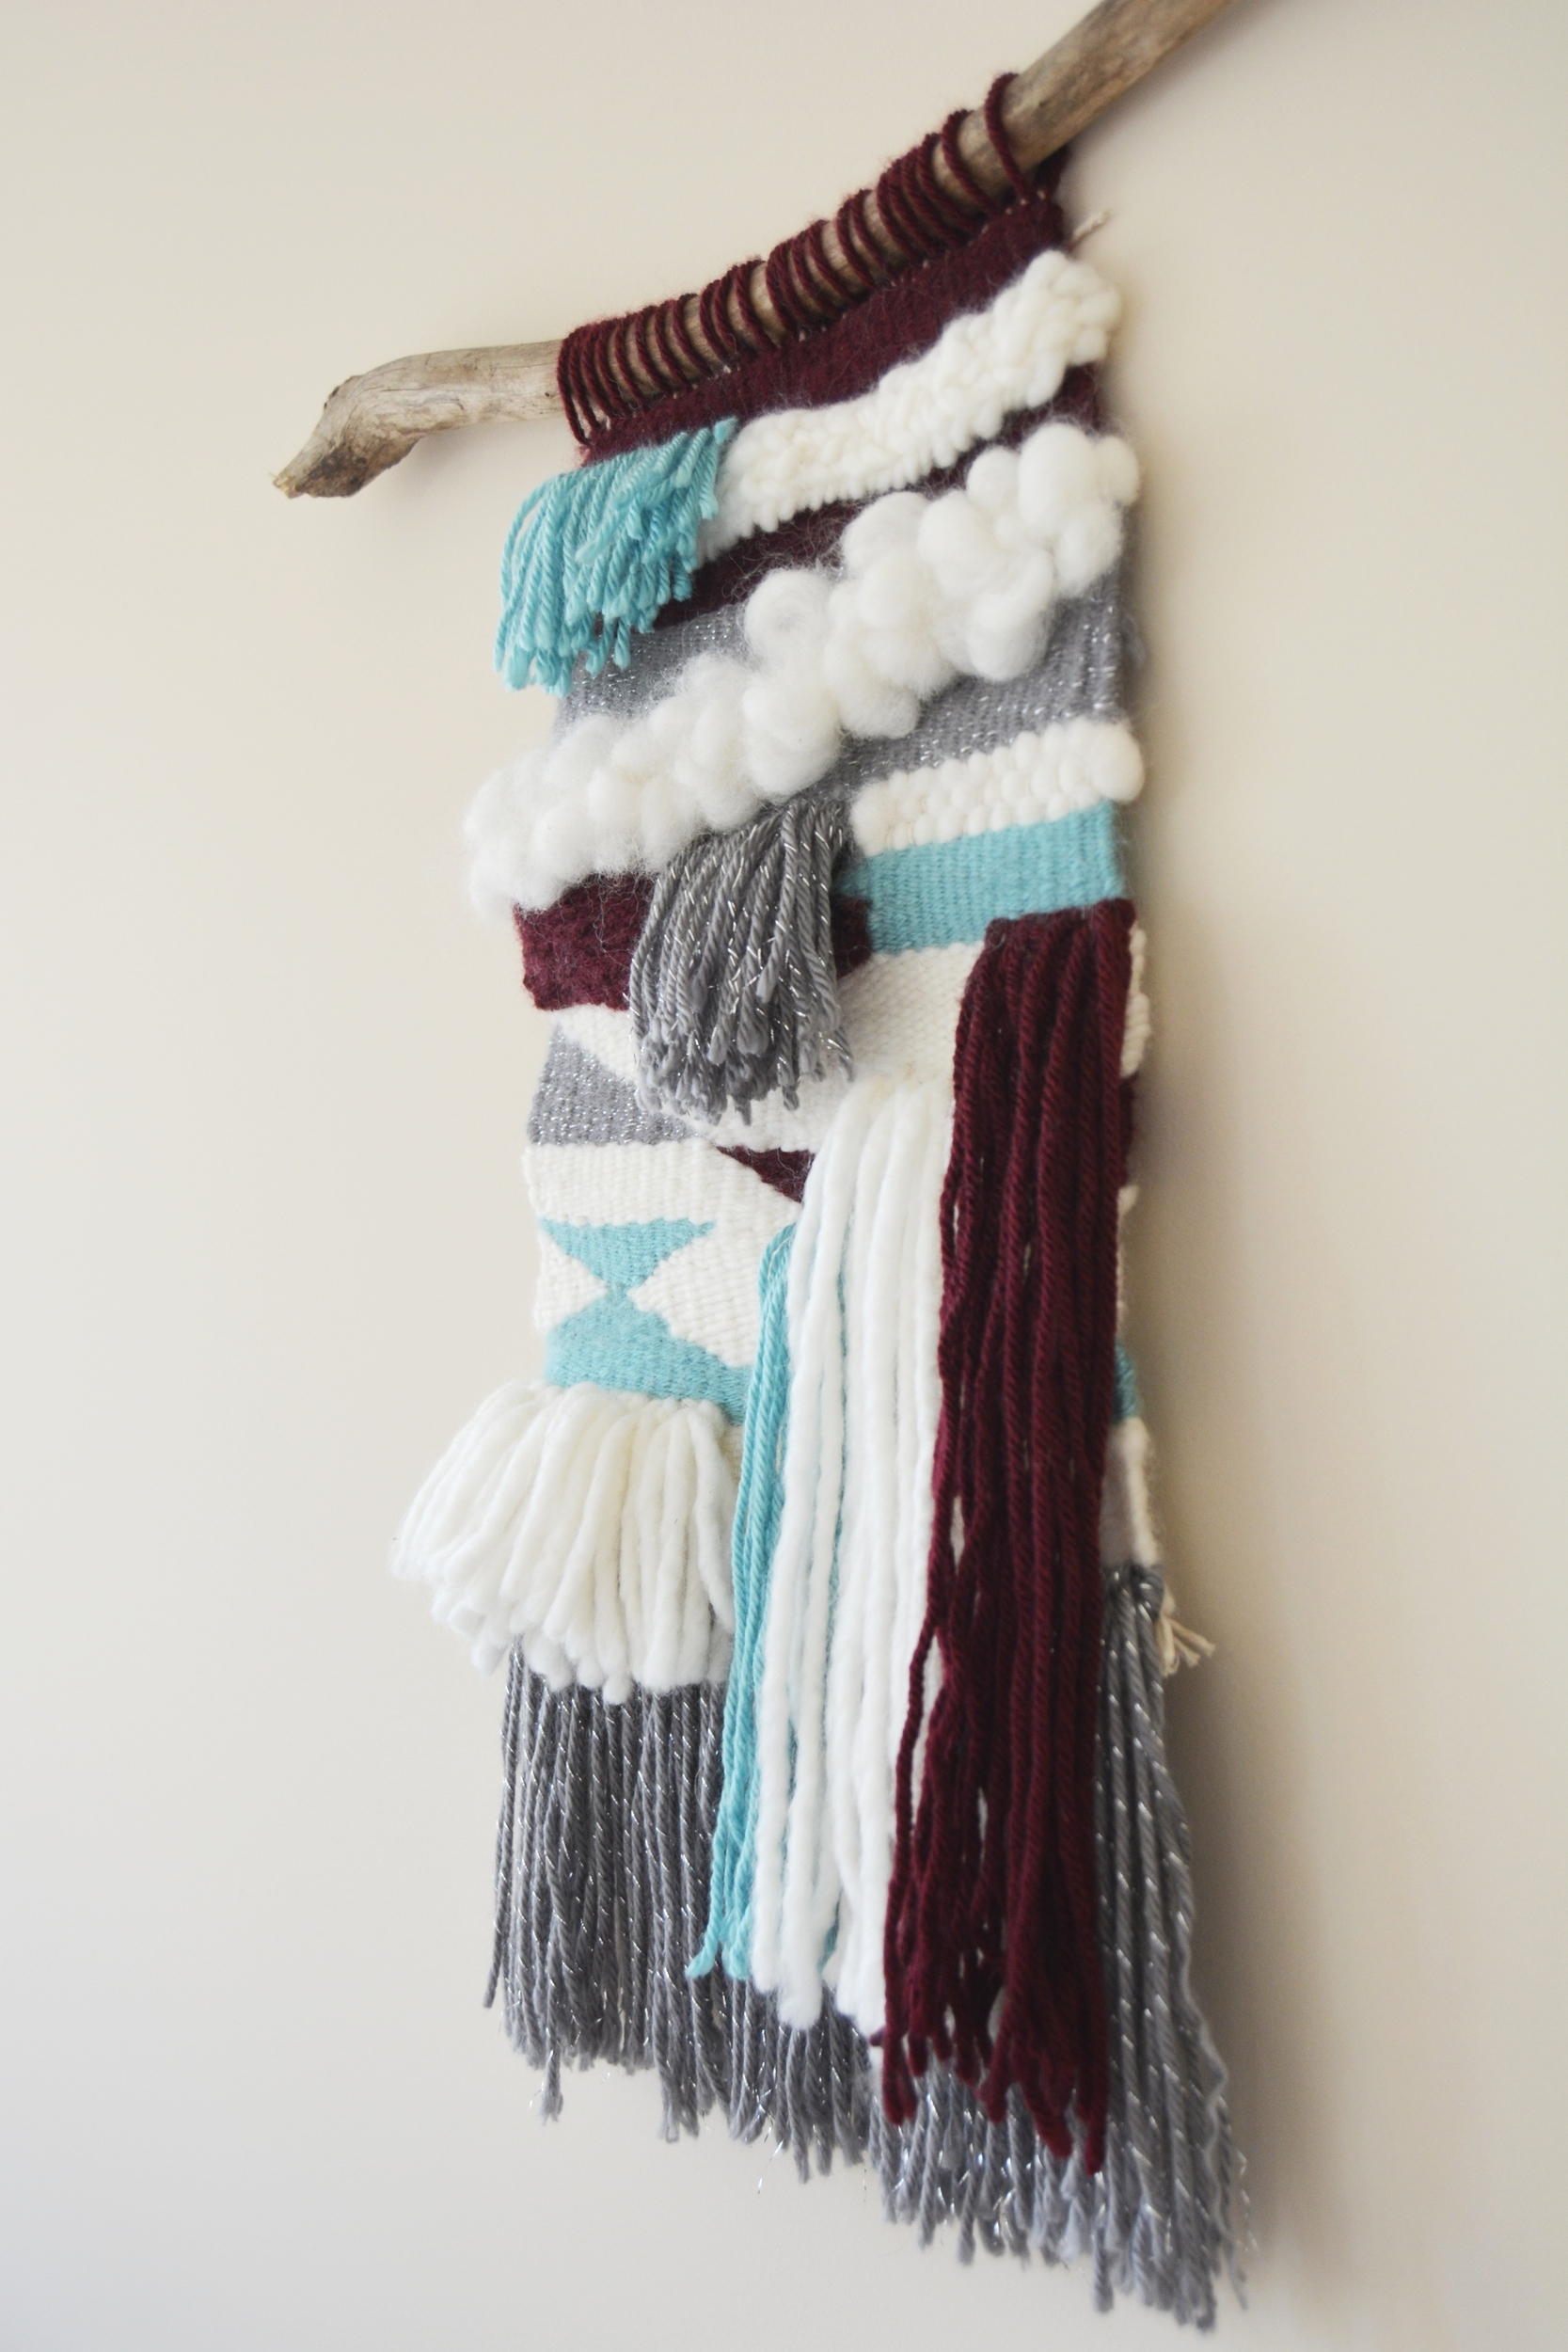 Woven Wall Hanging Tapestry - Side Close